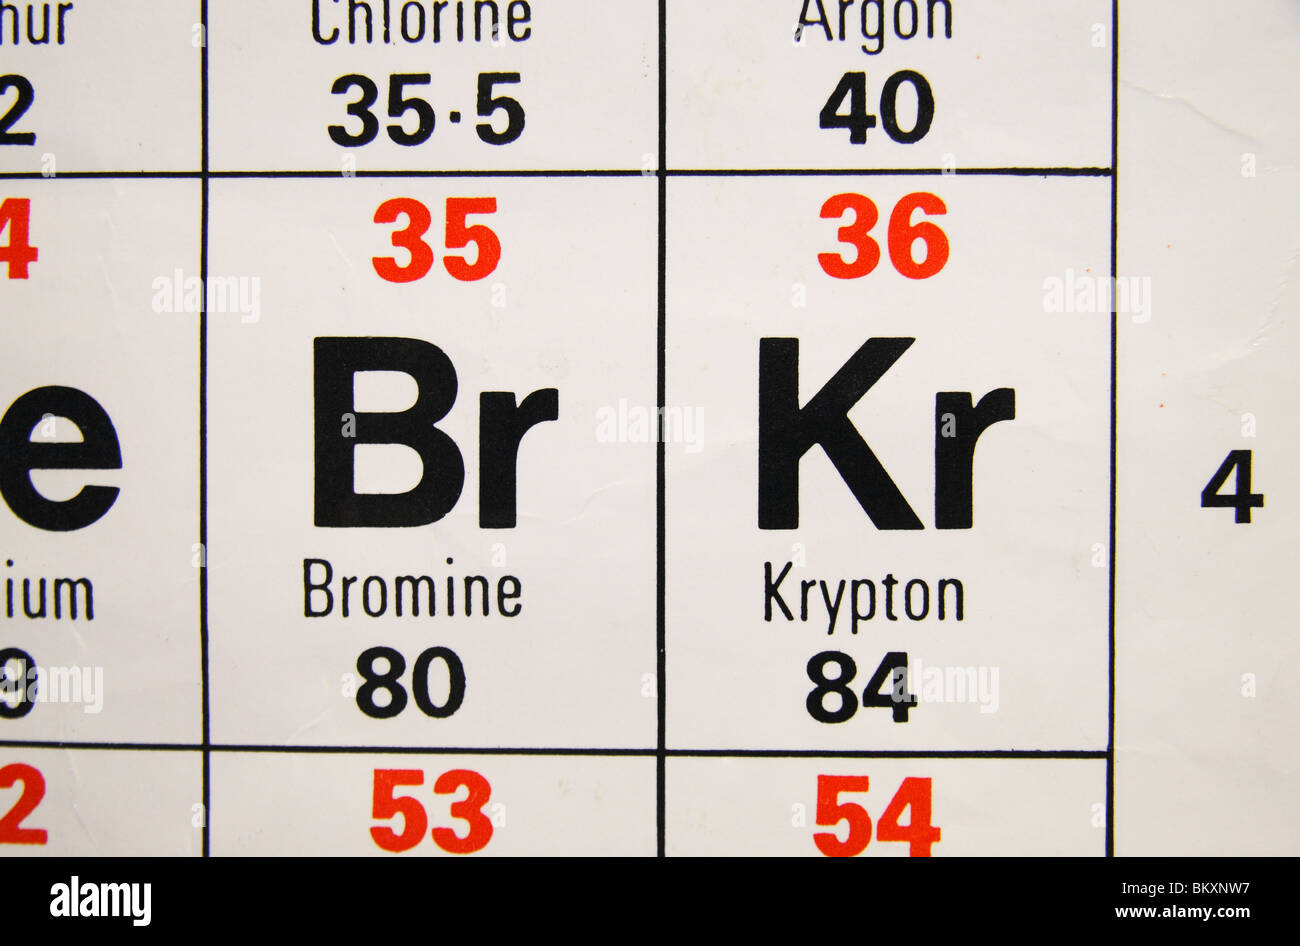 Close up view of a standard uk high school periodic table close up view of a standard uk high school periodic table focusing on the gases bromine and krypton gamestrikefo Choice Image